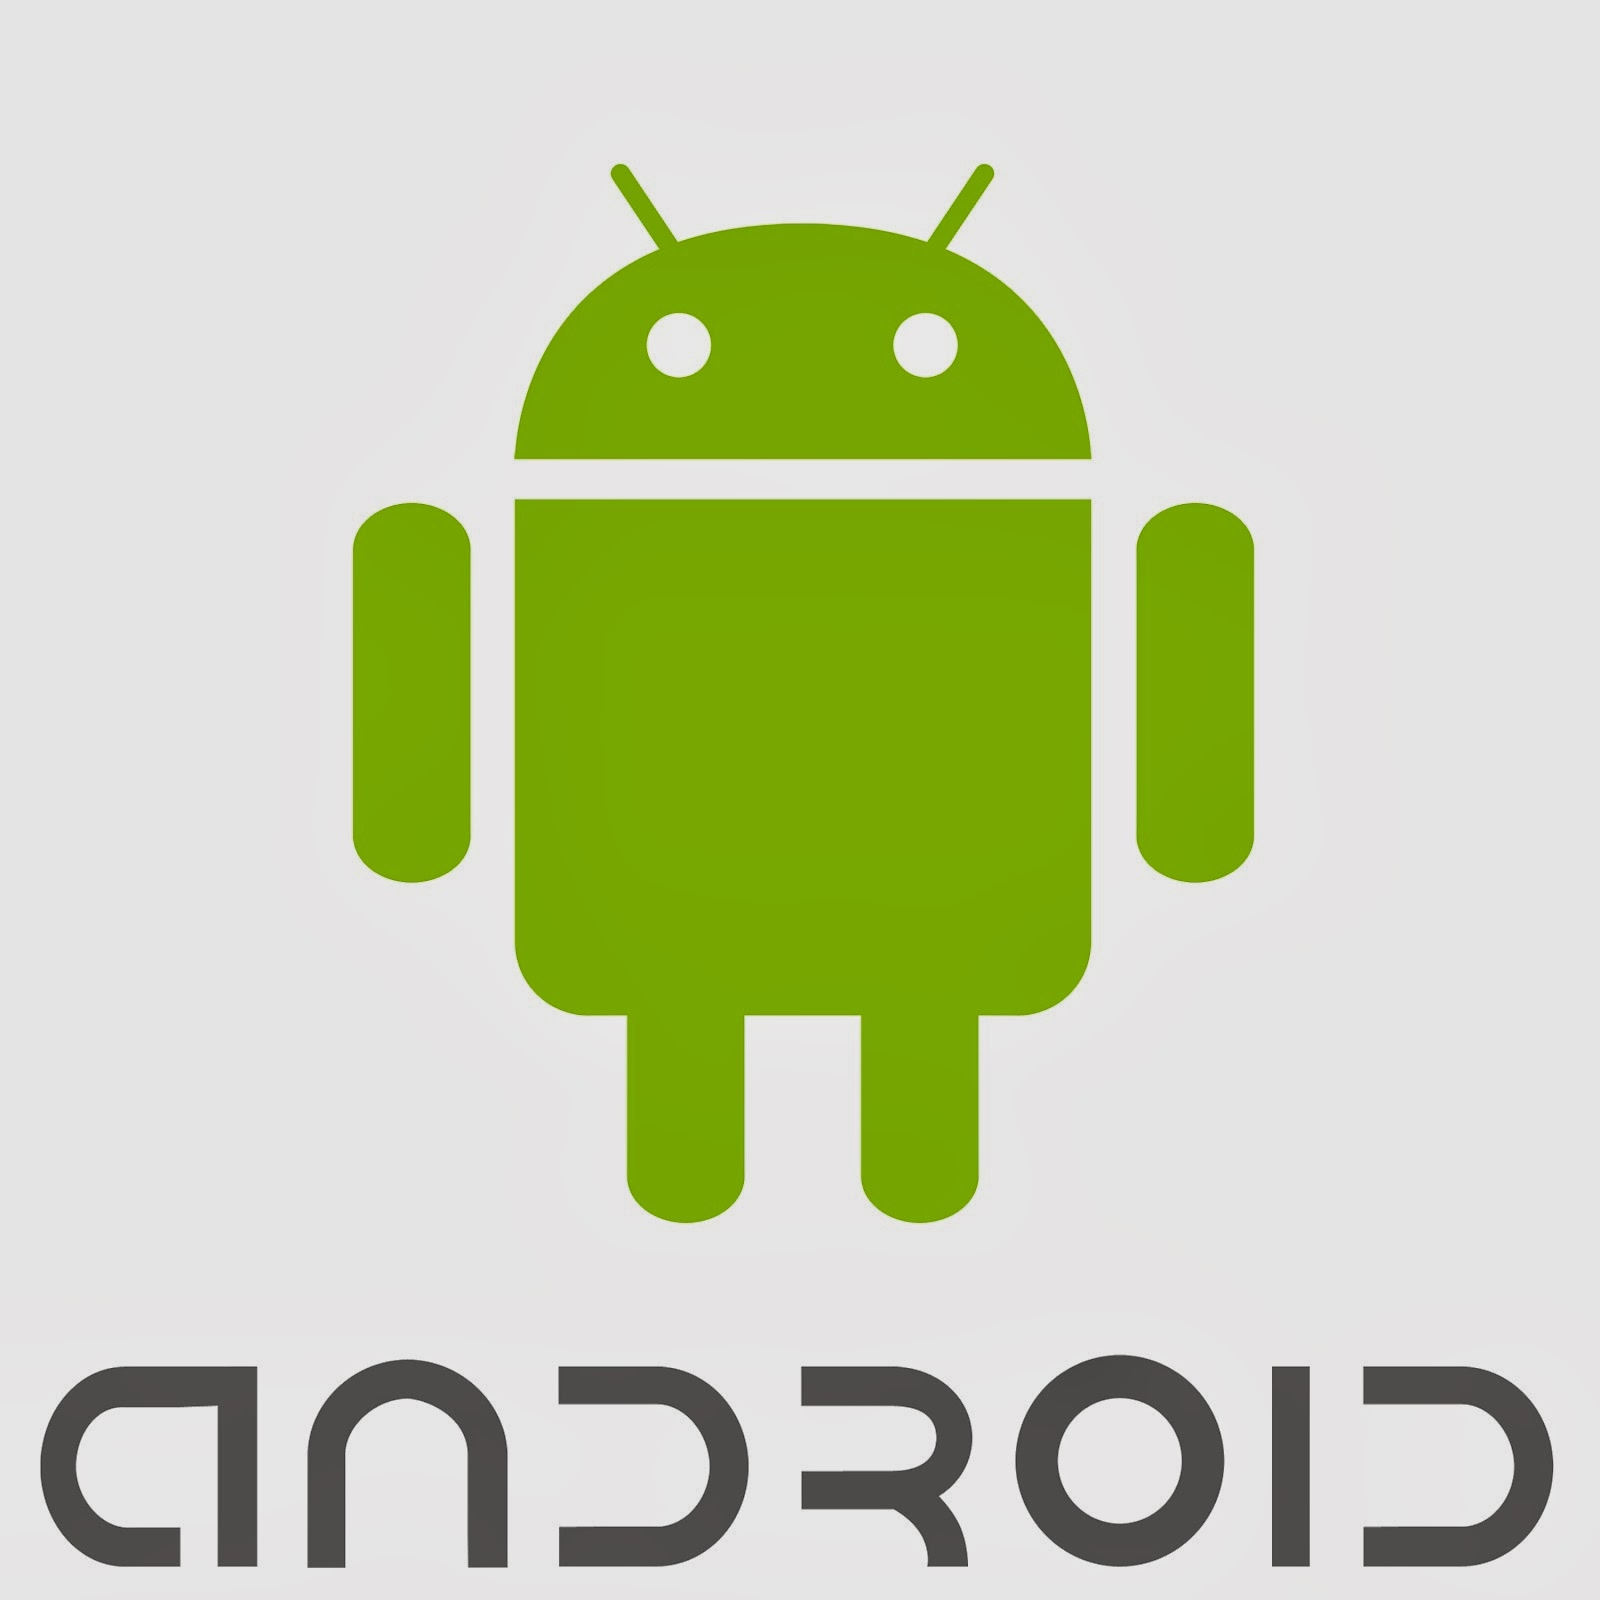 Android: Building A Brand Around An Open-Source Trade Mark ...